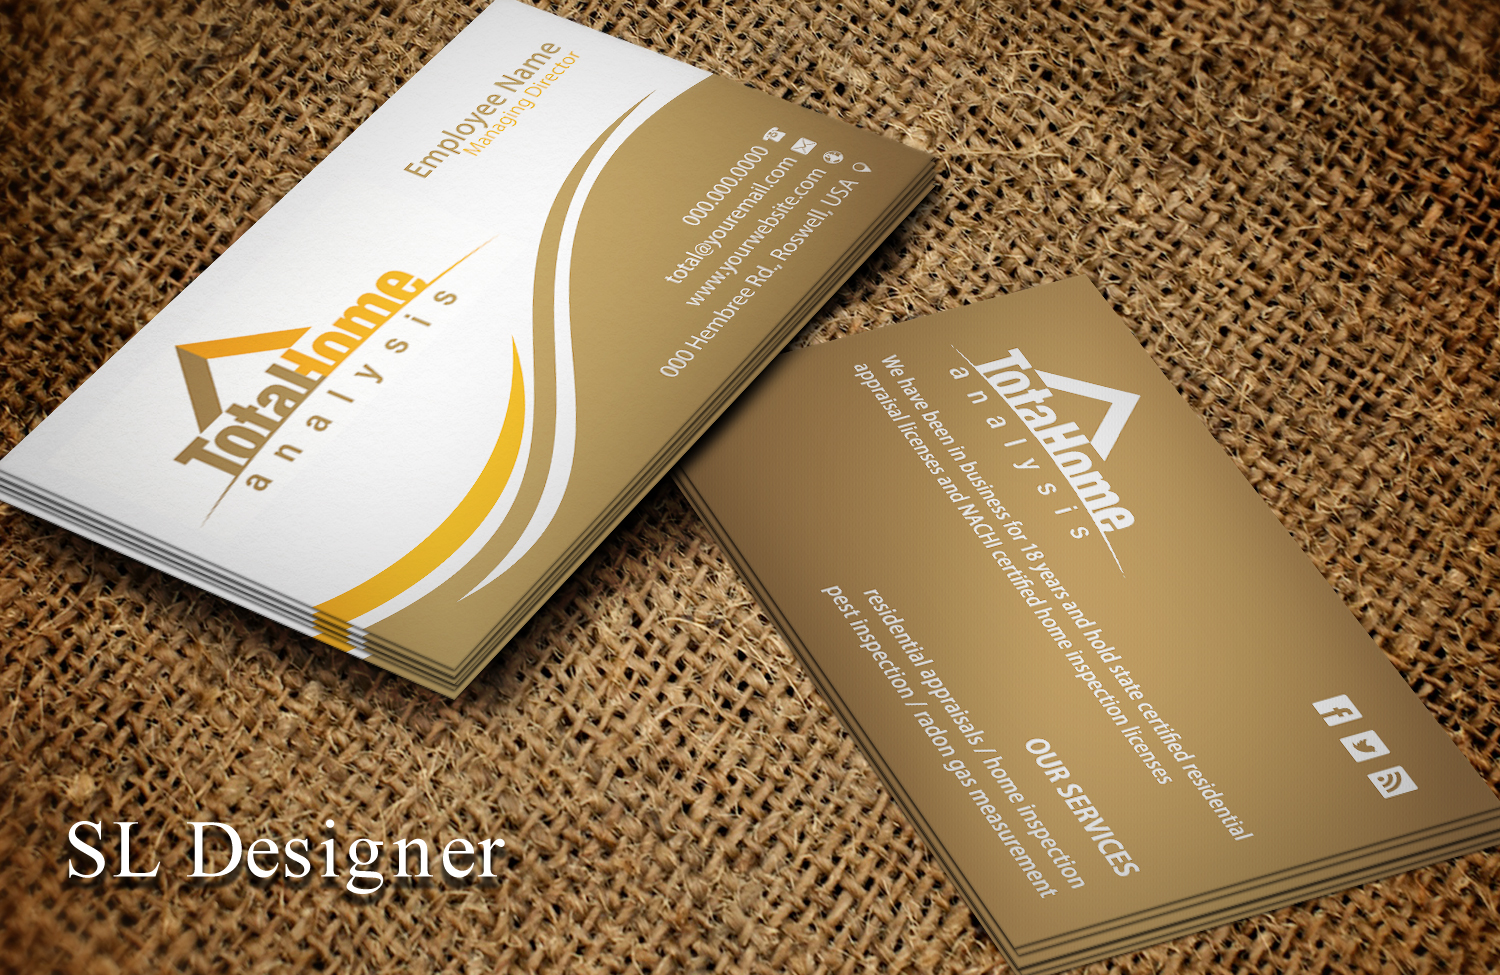 Business business card design for total home analysis by sl designer business business card design for total home analysis in united states design 7880650 colourmoves